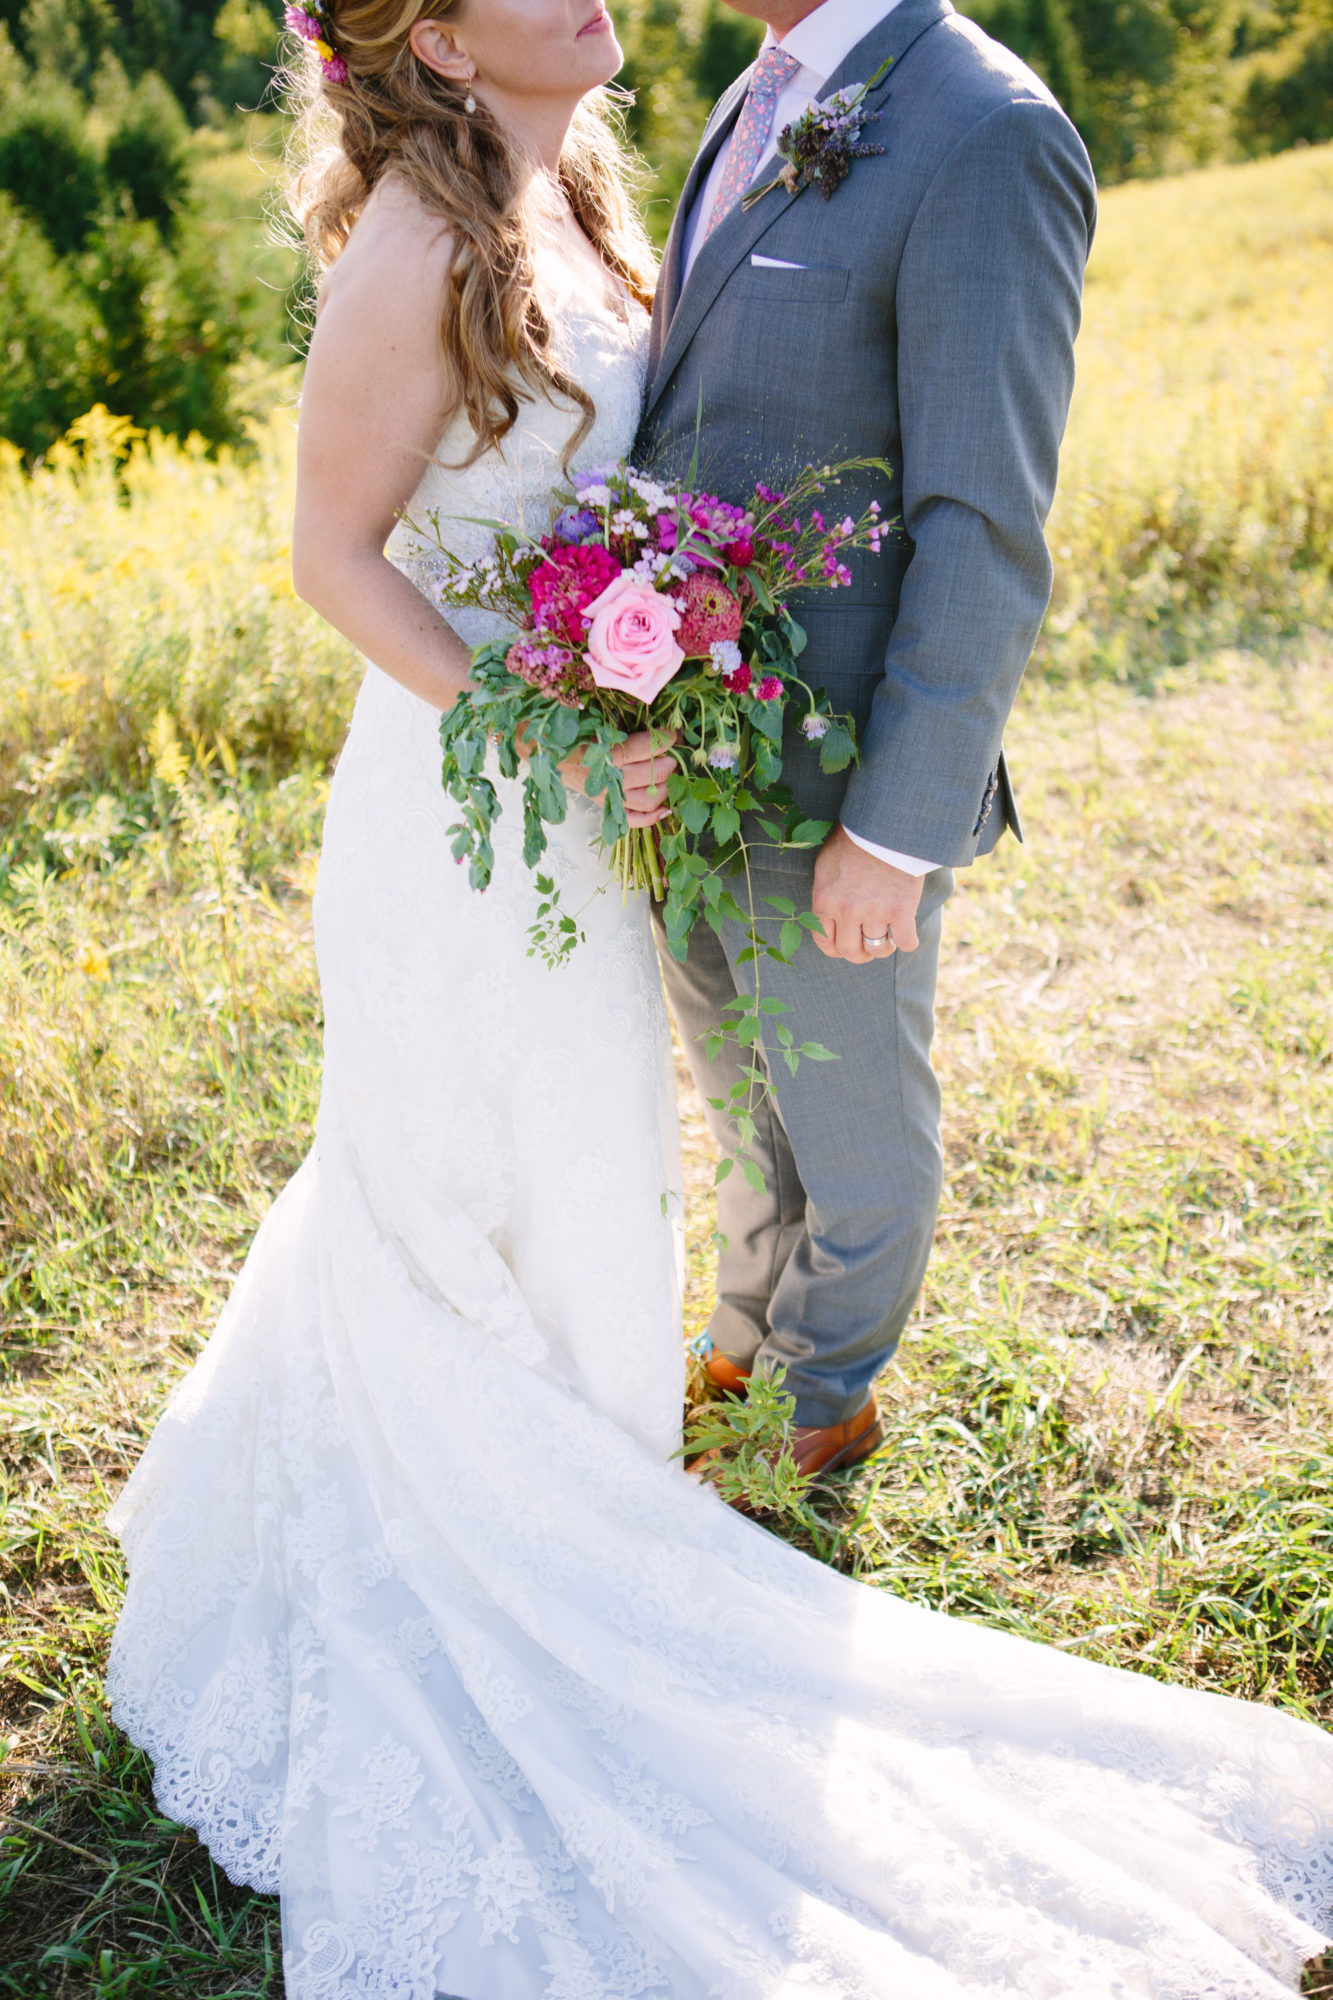 Bride Groom Field Flowers South Pond Farms Zsuzsi Pal Photography Wedding